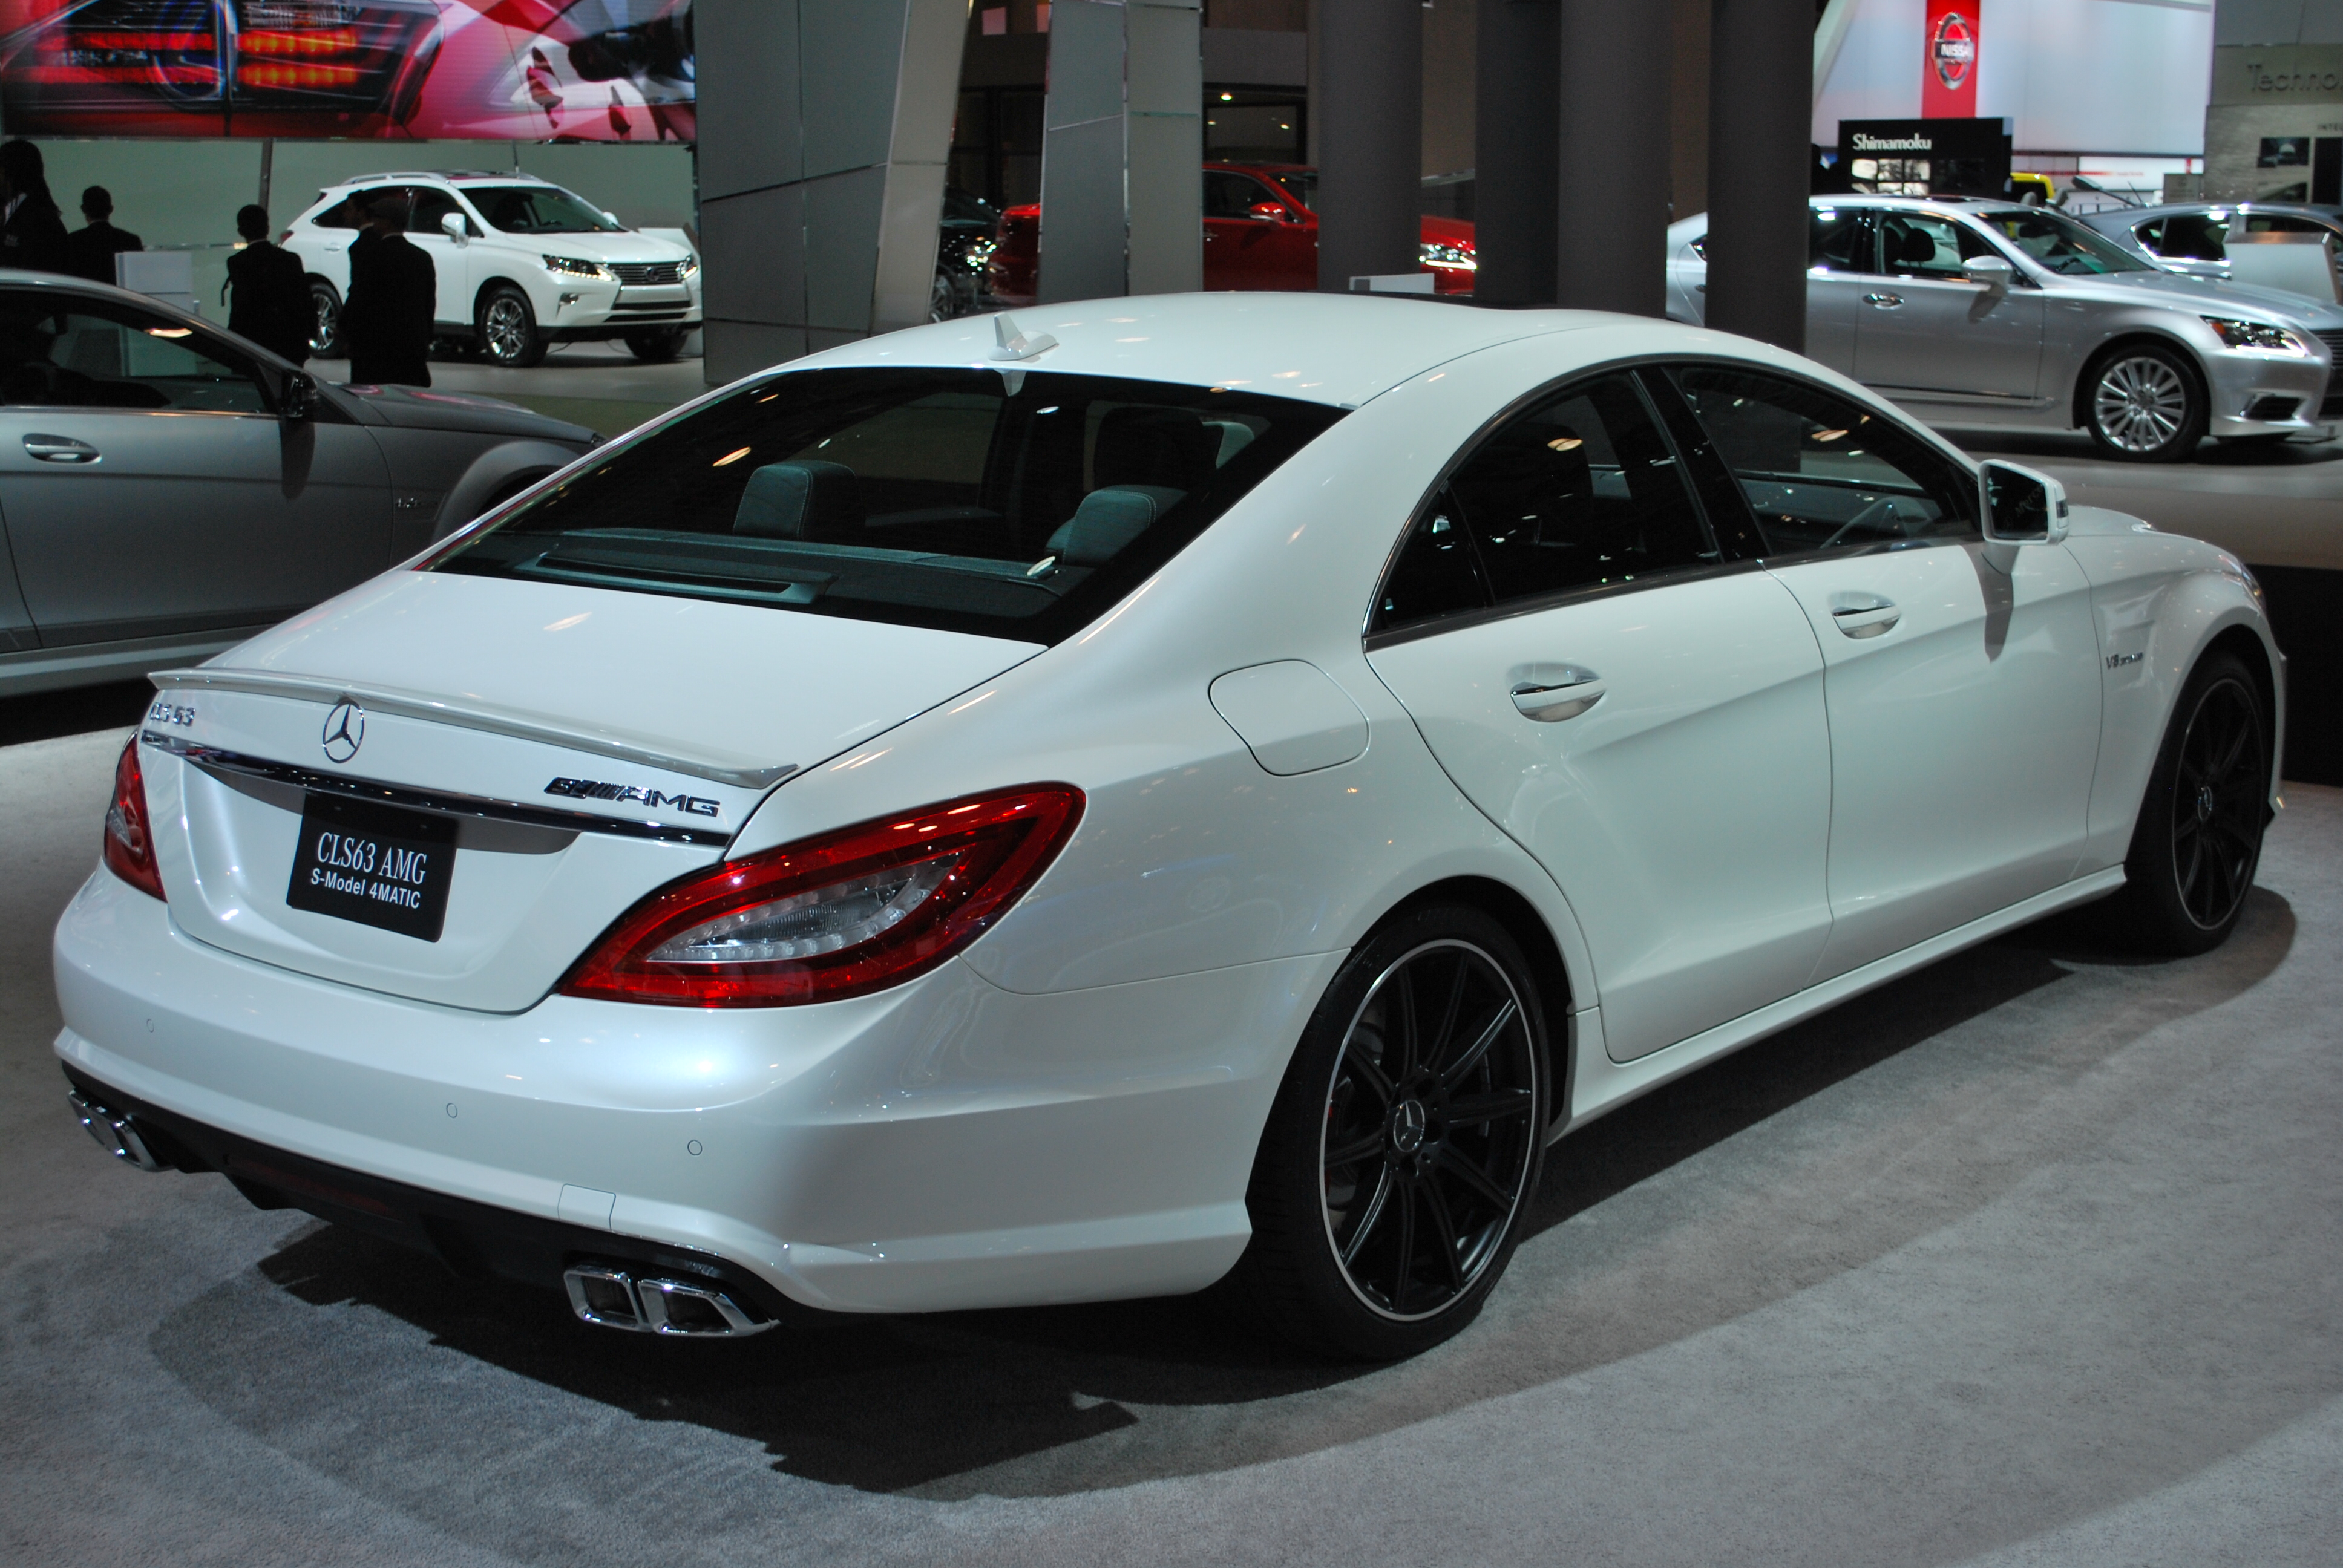 2014 mercedes benz cls63 amg s model 4matic ii by for 2014 mercedes benz cls63 amg 4matic